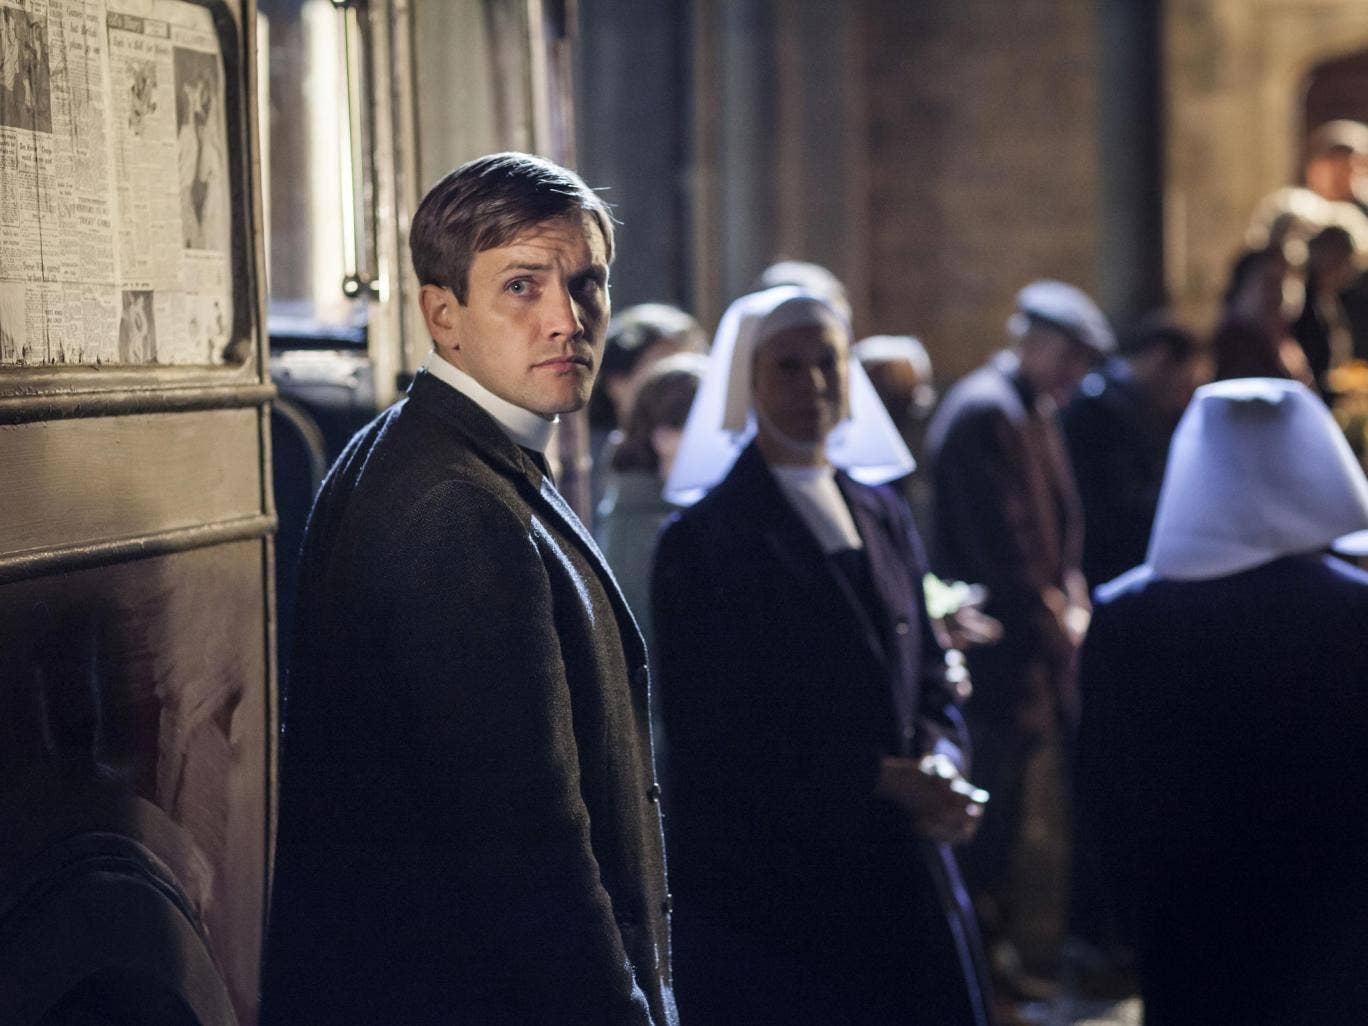 In praise of youth: Tom Hereward as the youthful vicar in Call the Midwife